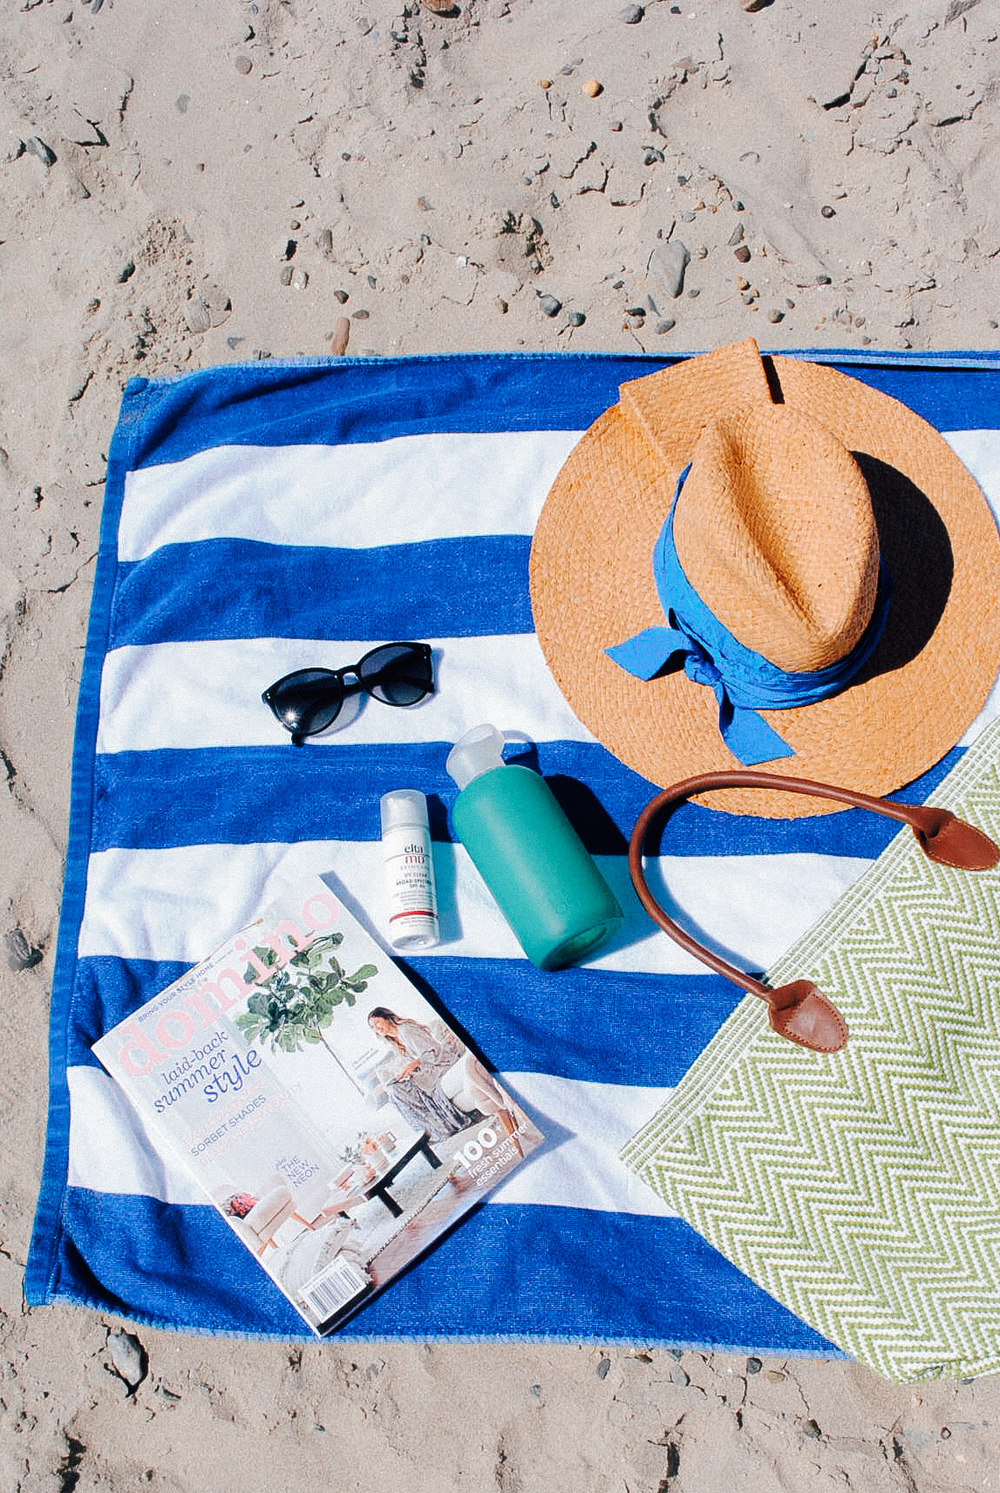 Beach Bag Essentials: Elta MD sunscreen, Oliver Peoples Sugnalsses, Lola Hat, Domino Magazine, BRK Waterbottle.